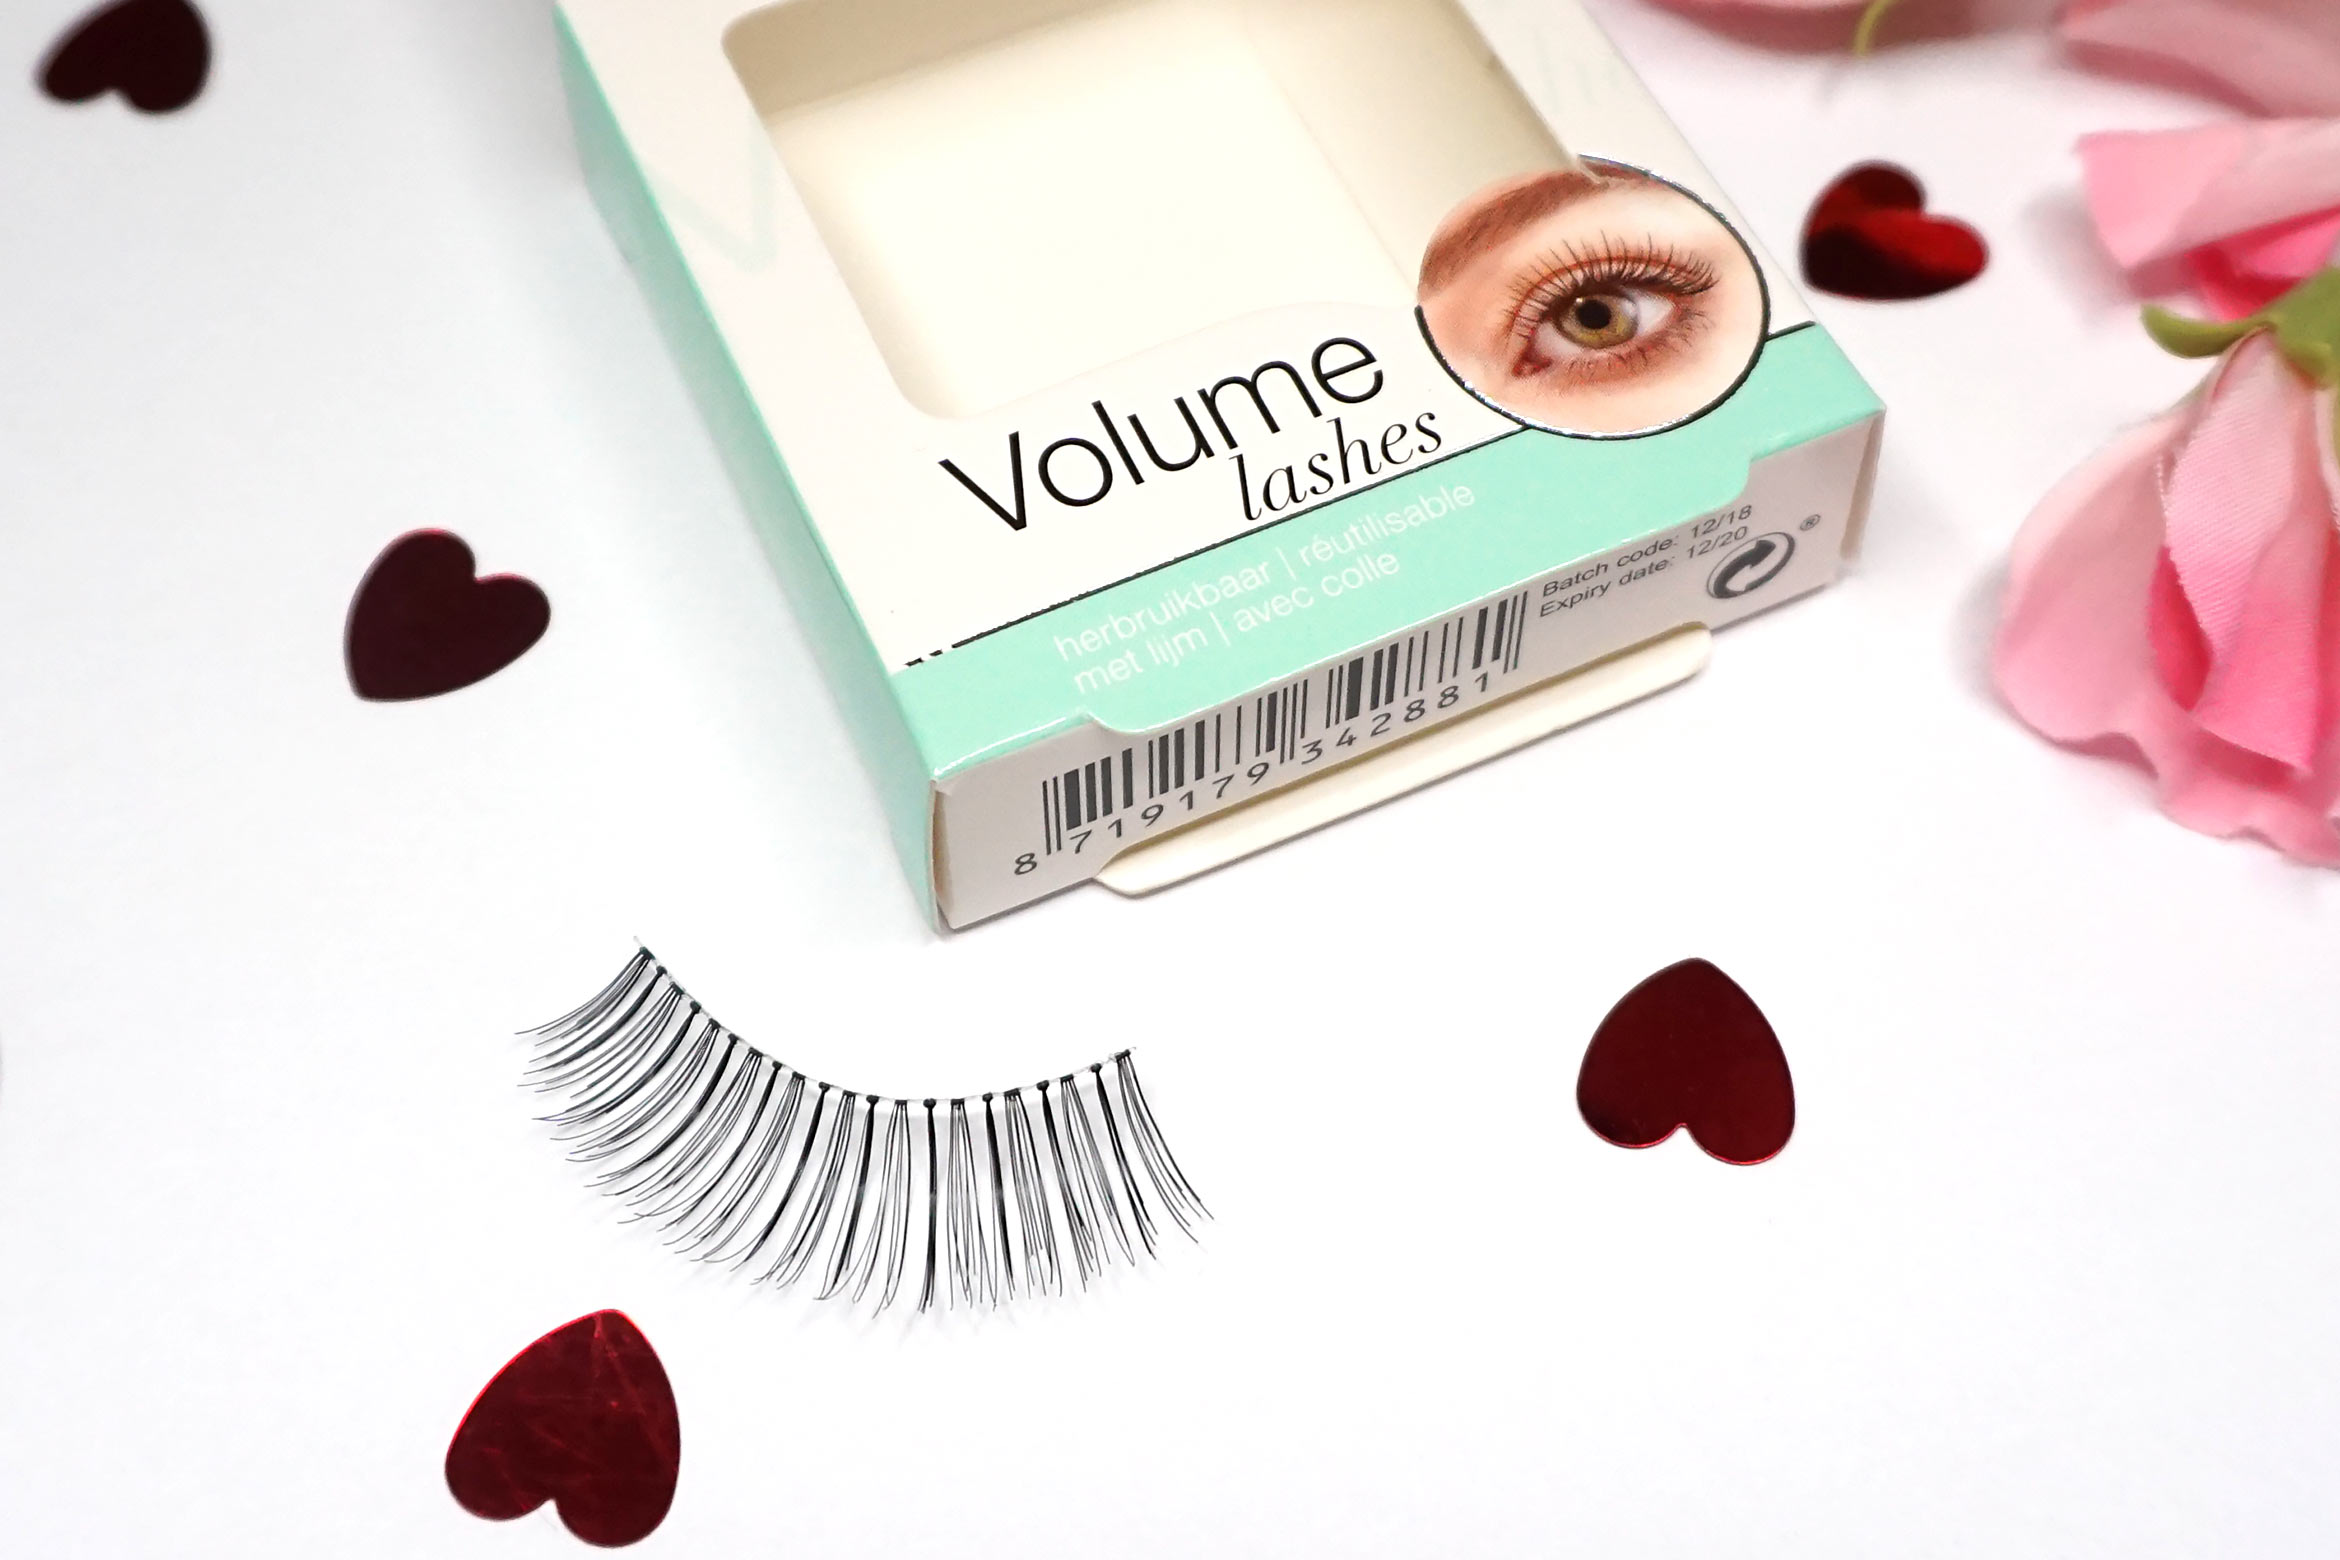 kruidvat-volume-lashes-review-1